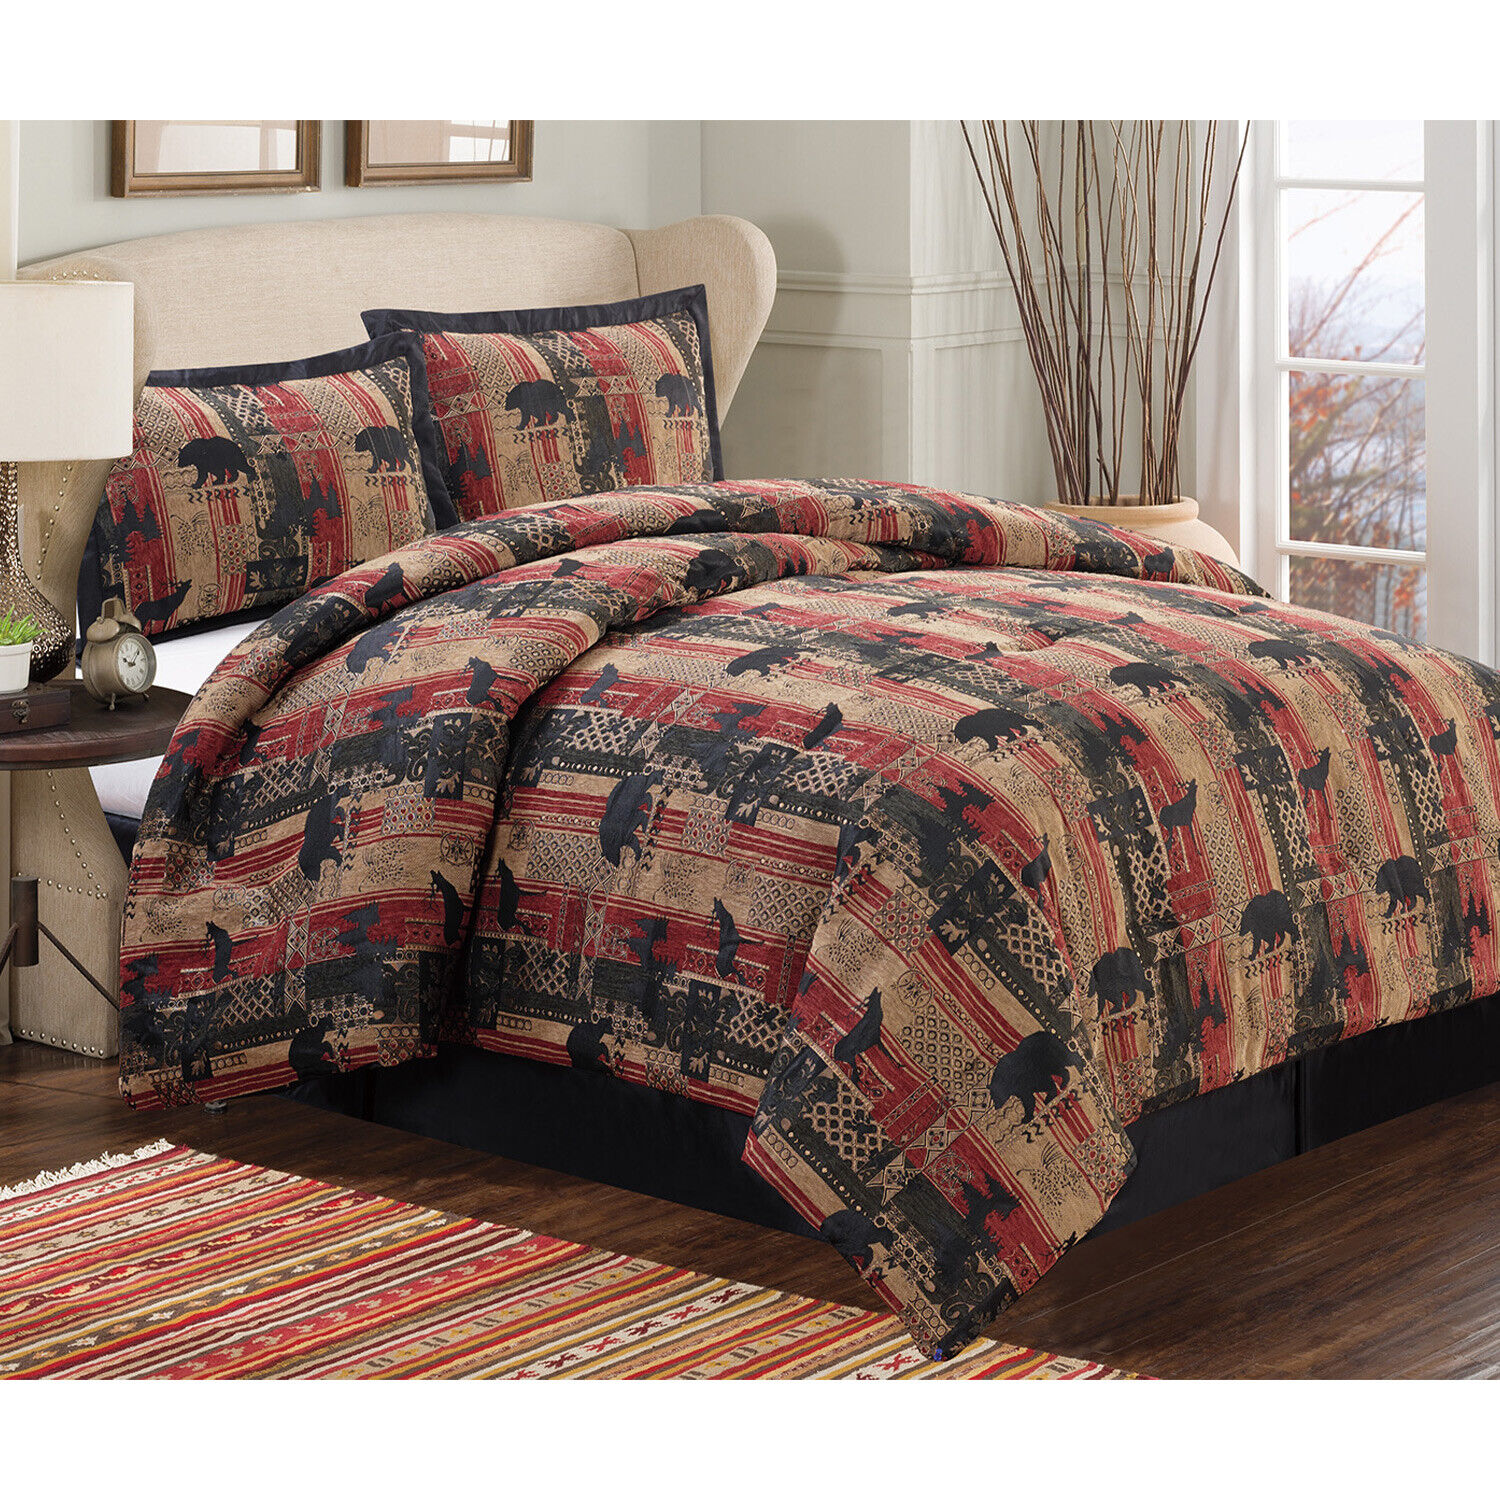 Queen or King Rustic Southwest Bear Oversized Comforter Bedding Set with Shams Bedding